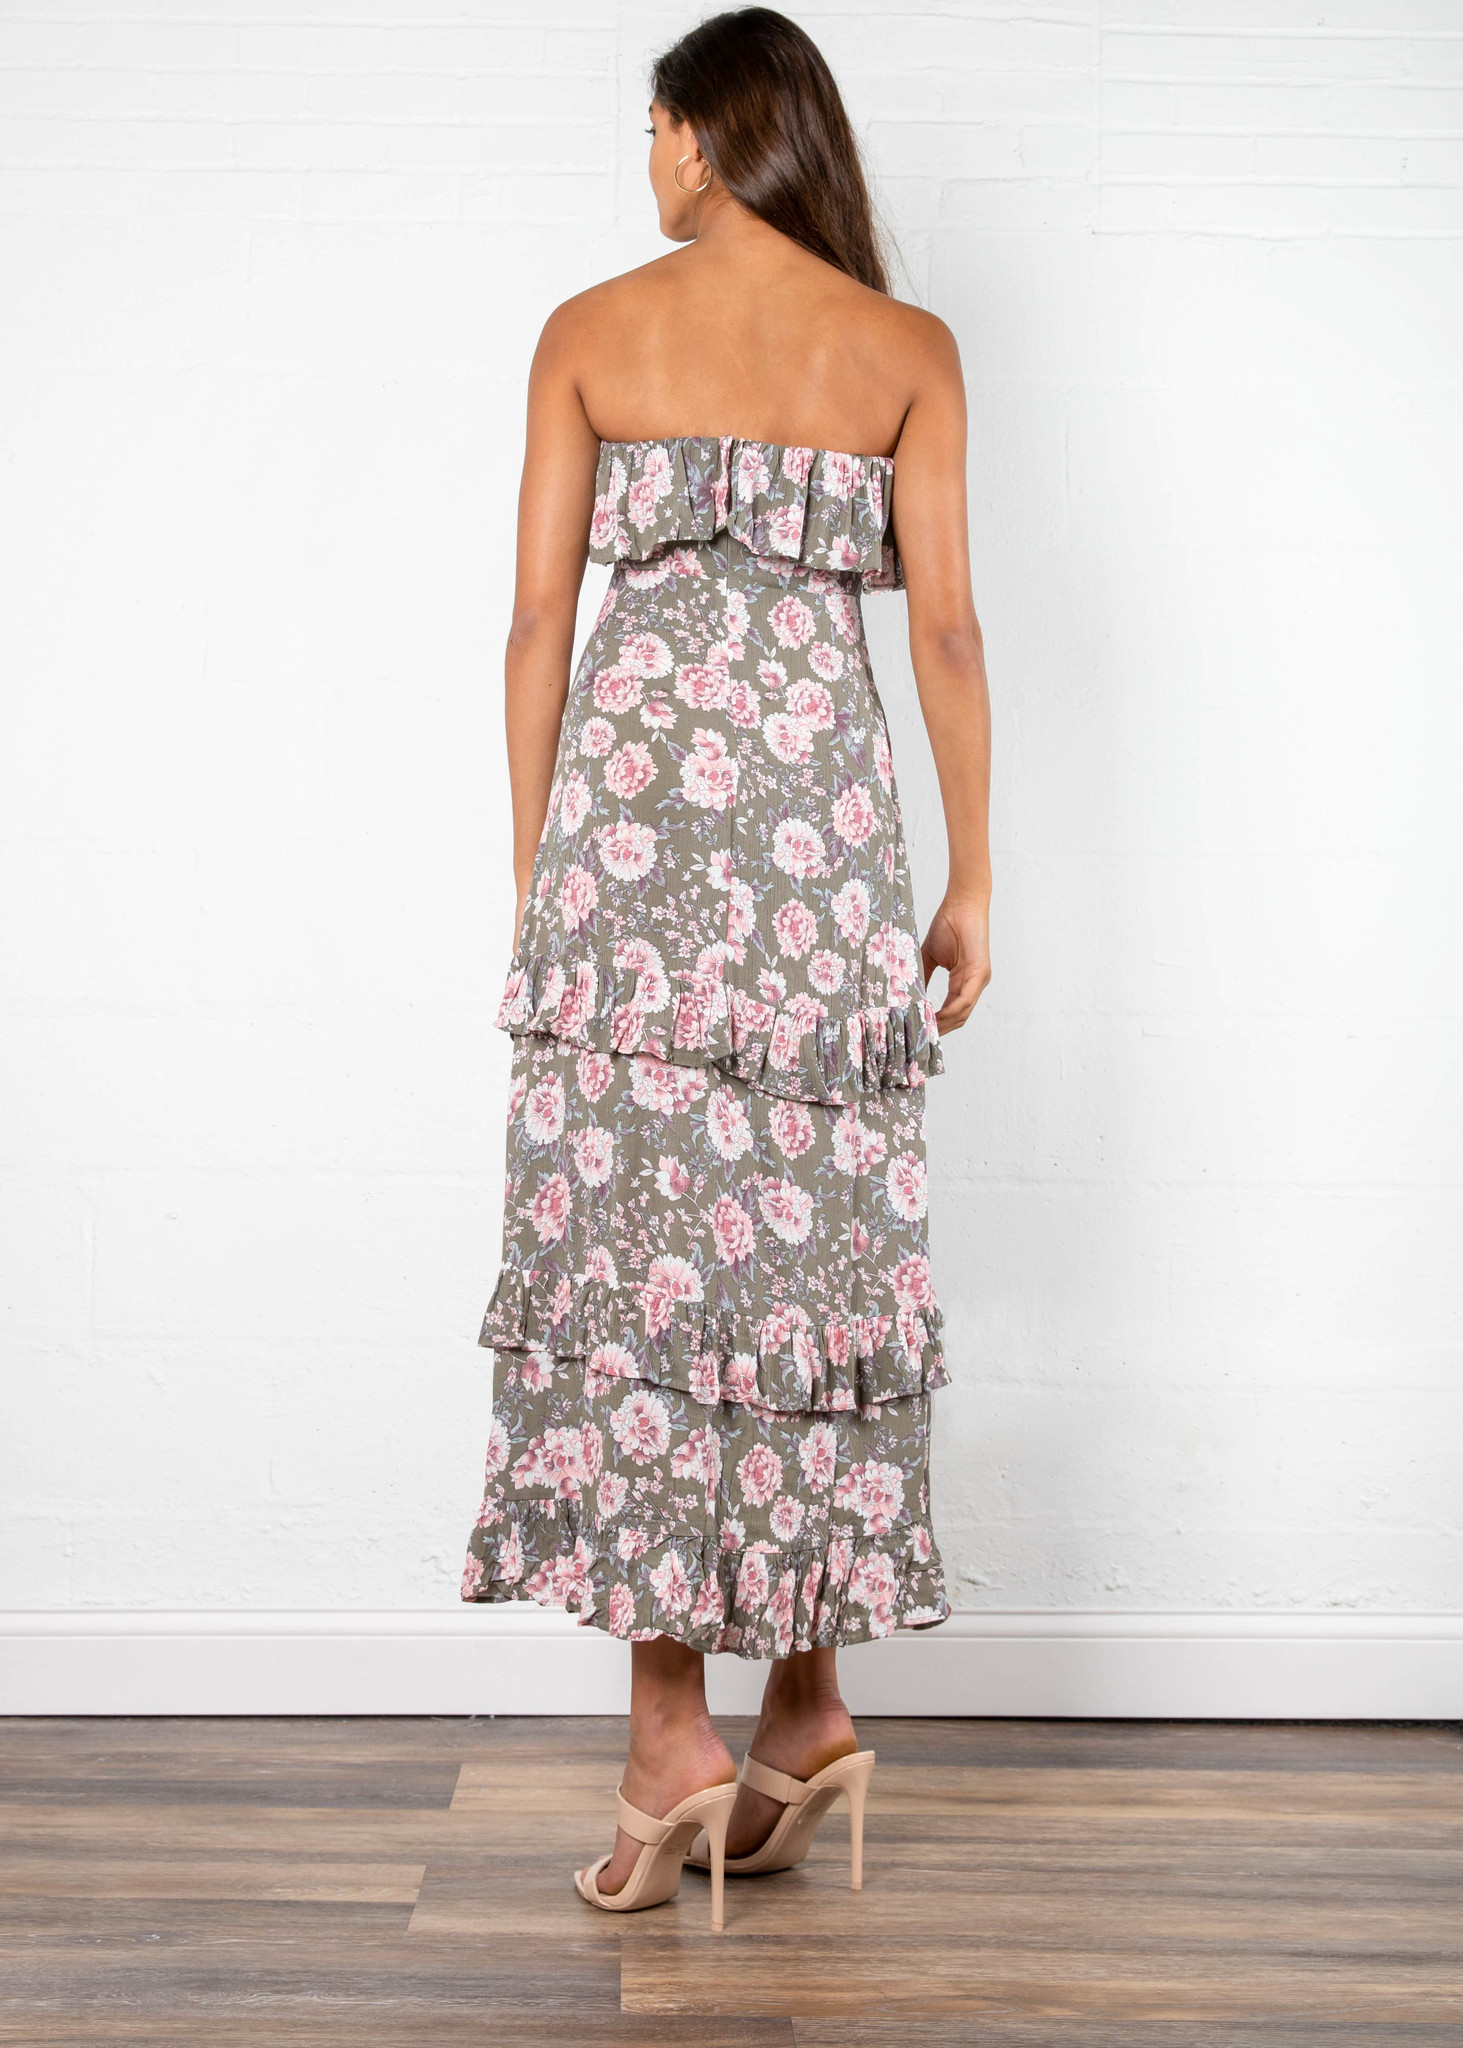 POPPY STRAPLESS MAXI DRESS